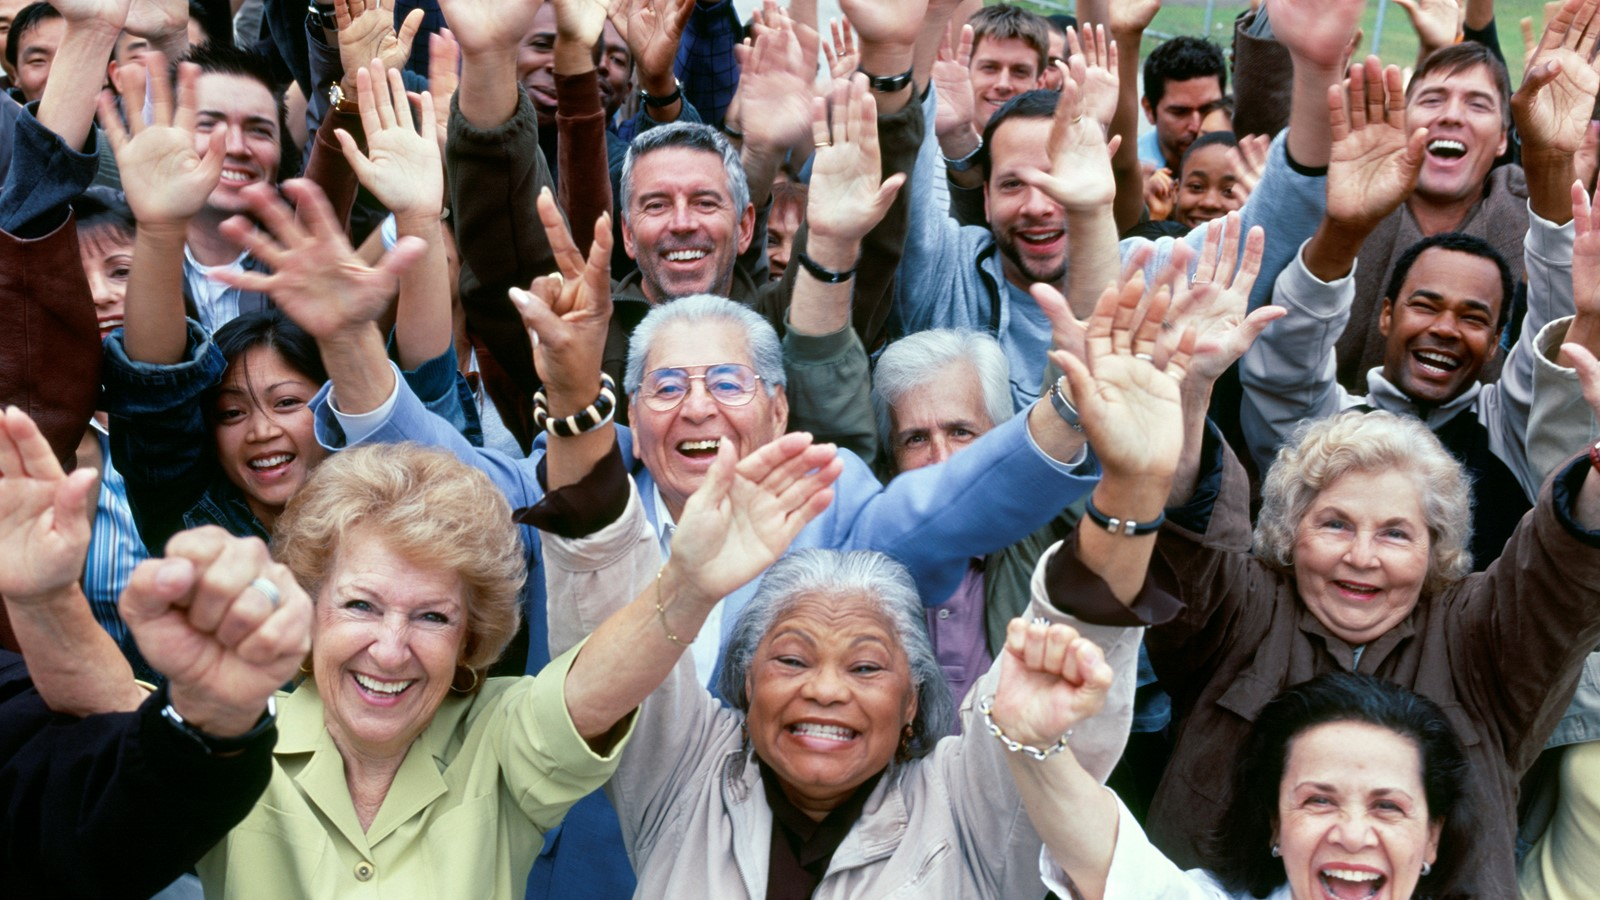 older-people-group-waving-banner.jpg